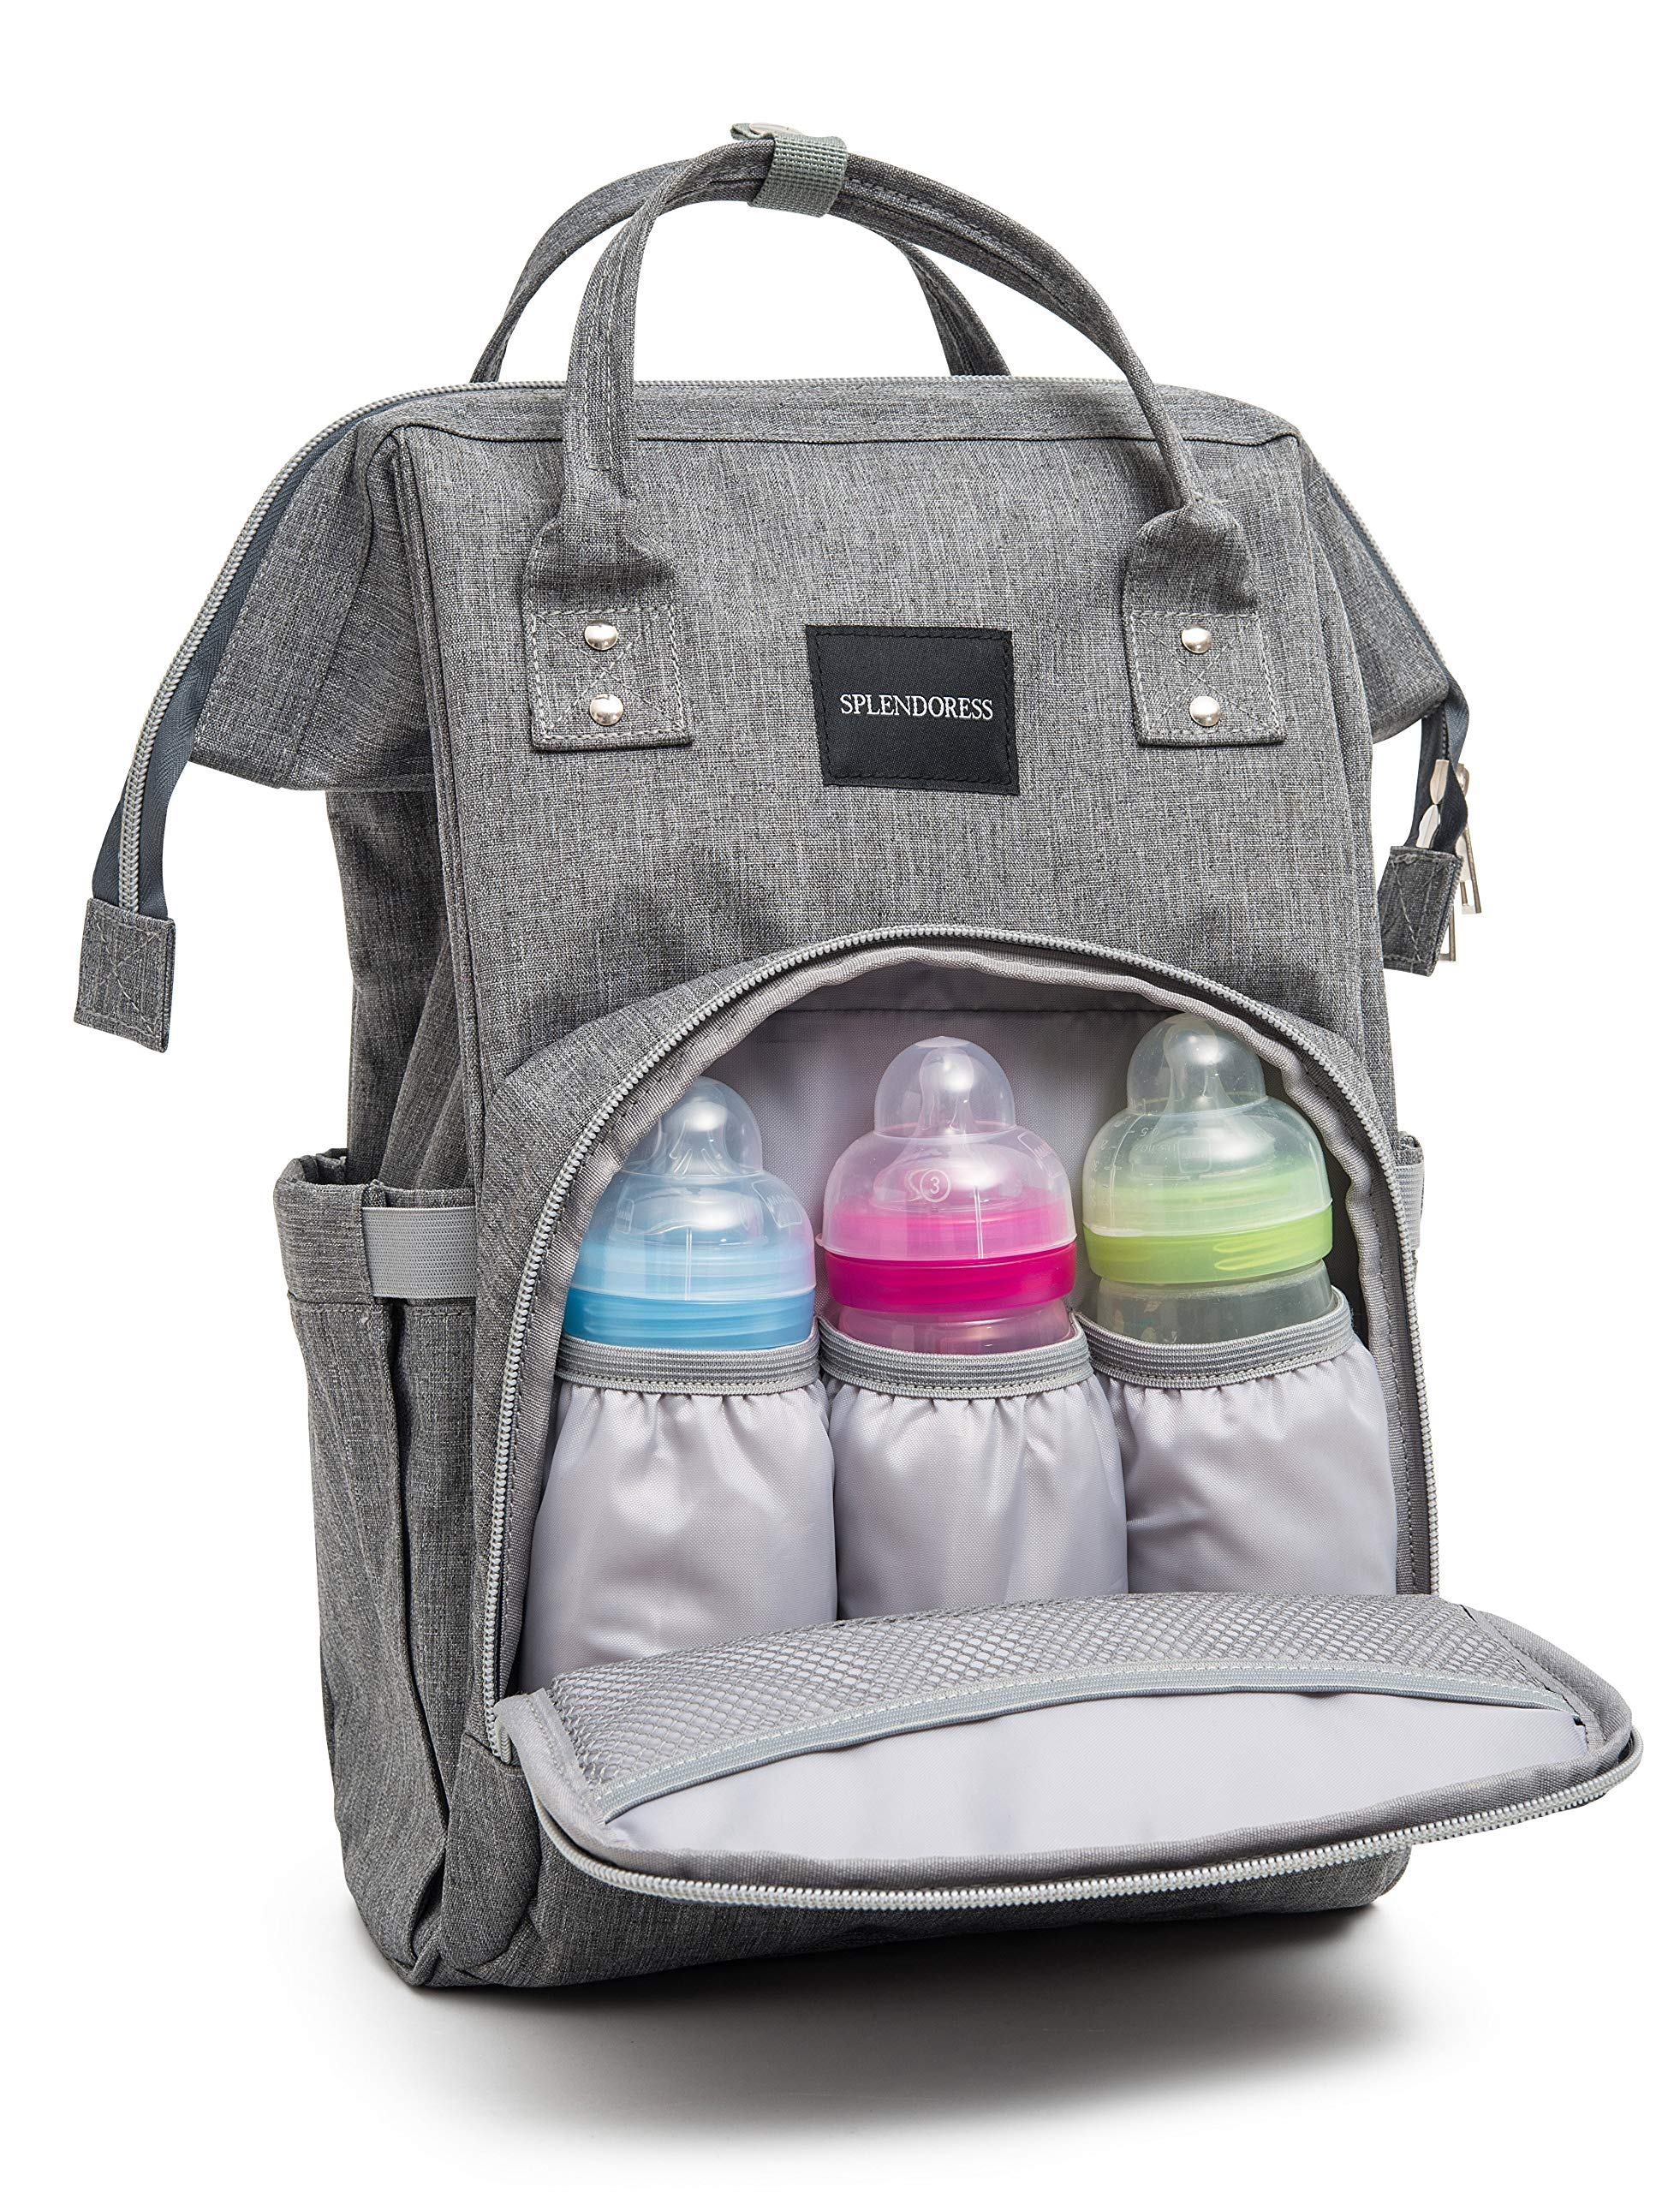 Baby Diaper Bag Backpack with Free Changing Pad - Waterproof Maternity Bag Organizer for Boy or Girl - Large Capacity Nappy Tote Stylish and Durable for Men and Women -Grey